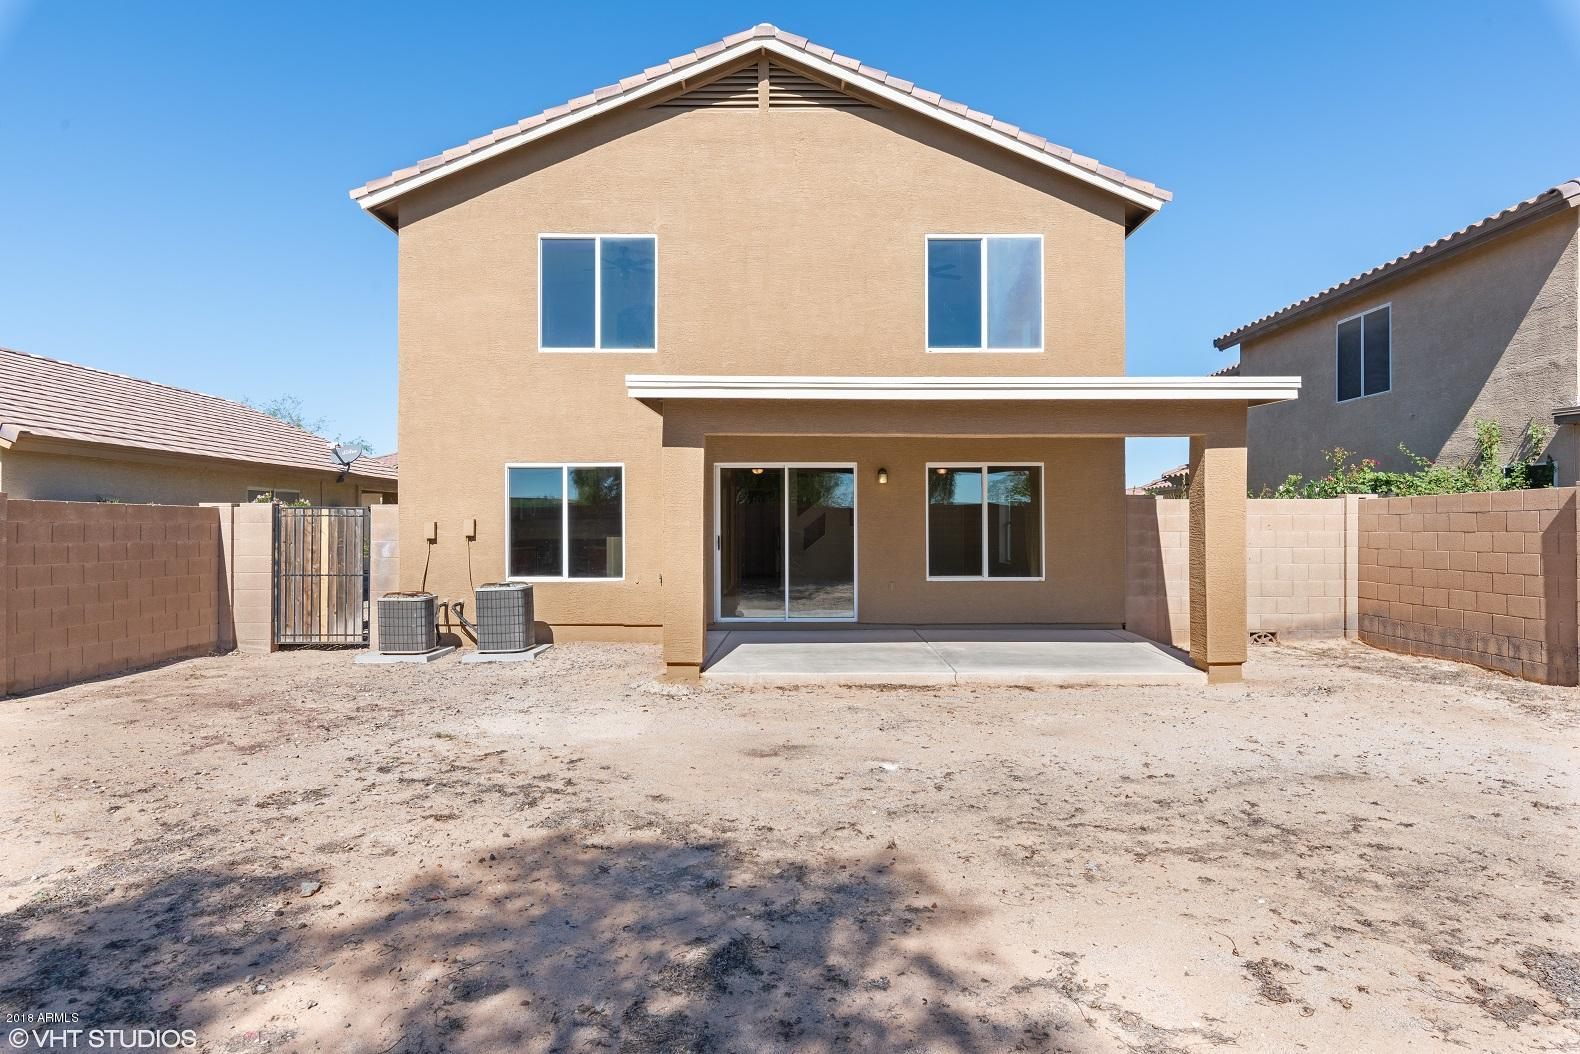 MLS 5839764 1649 W COOLIDGE Way, Coolidge, AZ 85128 Coolidge AZ REO Bank Owned Foreclosure